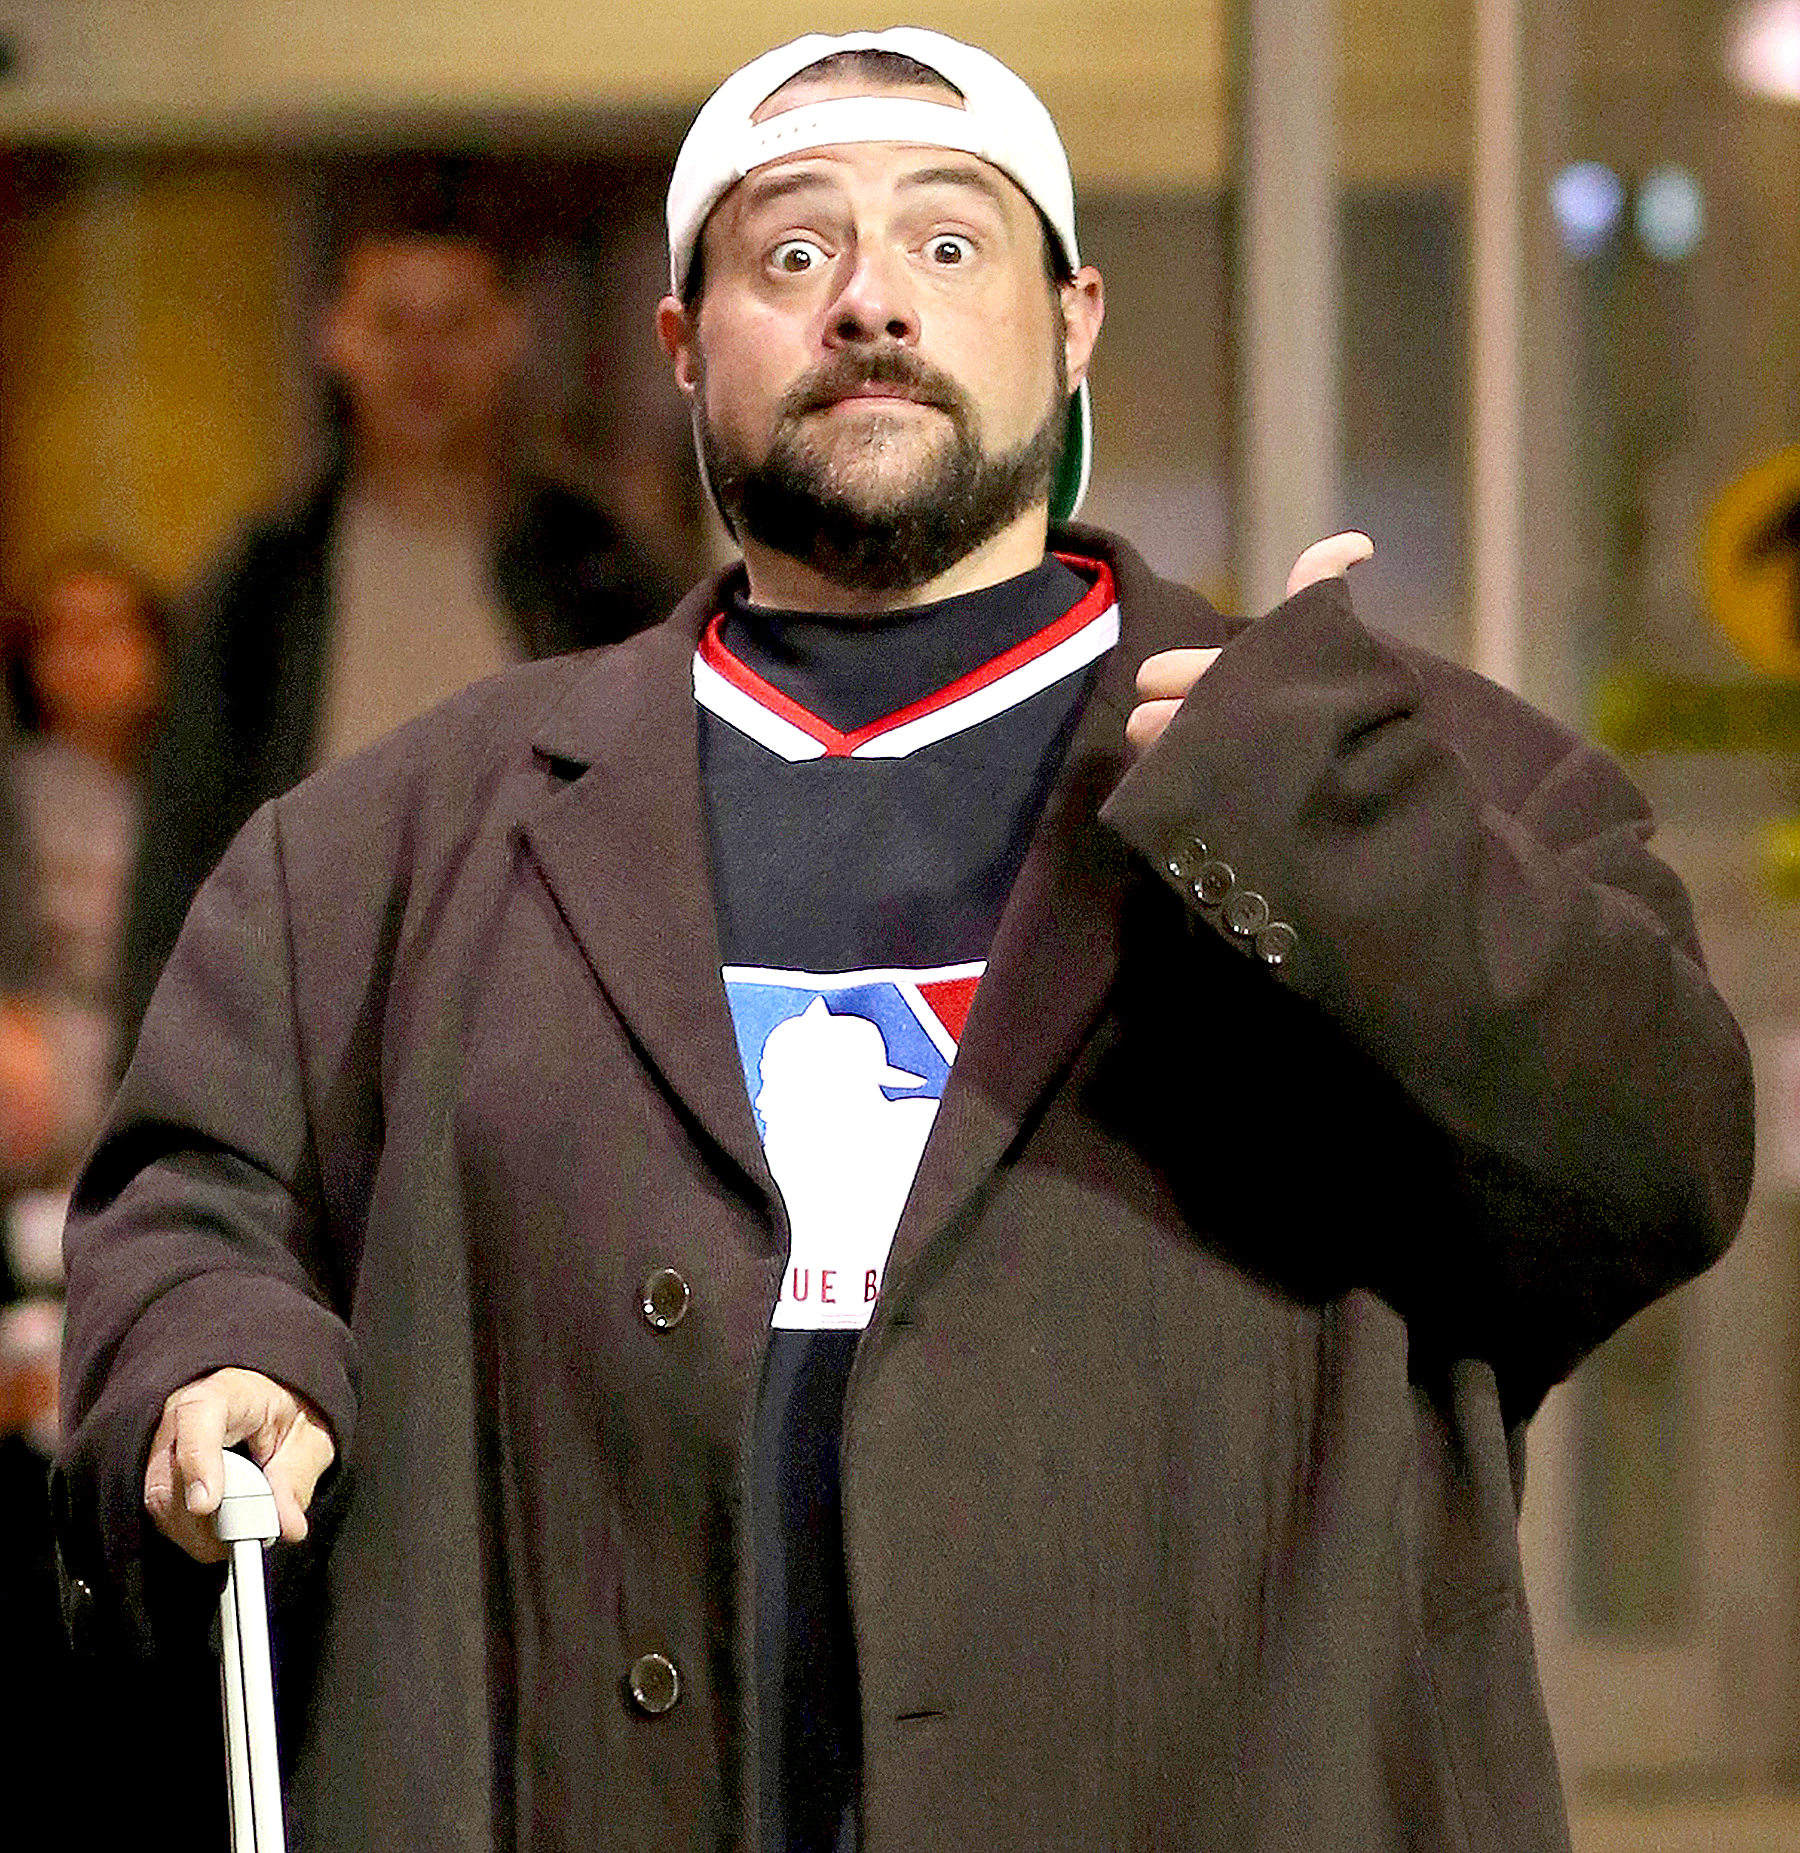 Kevin Smith Shows Off Weight Loss After Heart Attack Pics